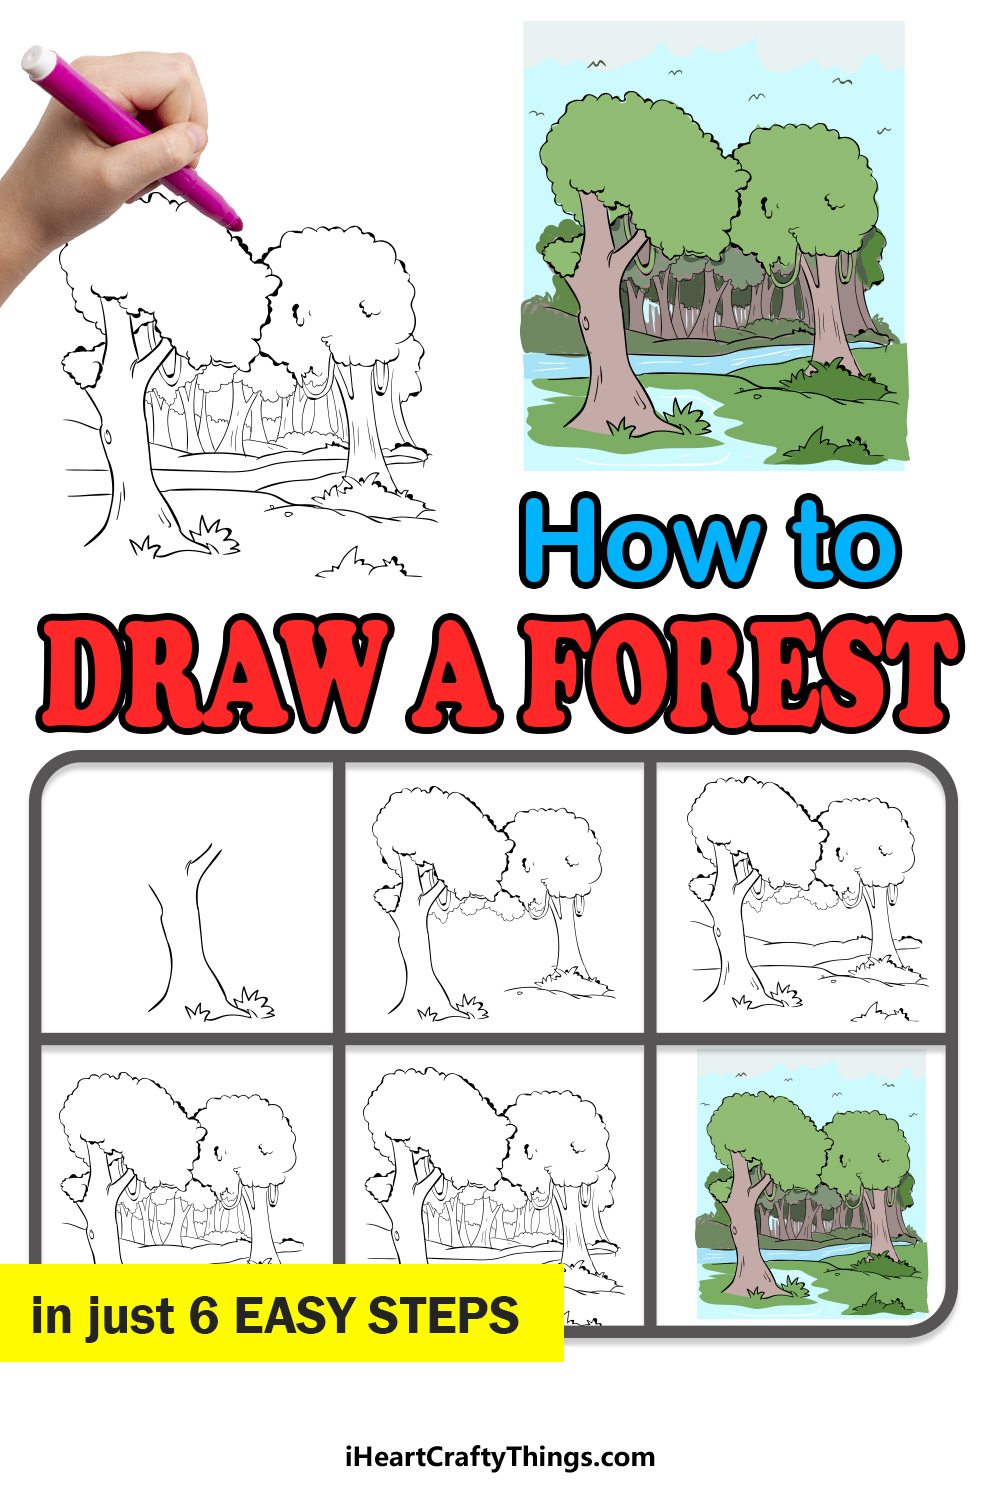 how to draw a forest in 6 easy steps